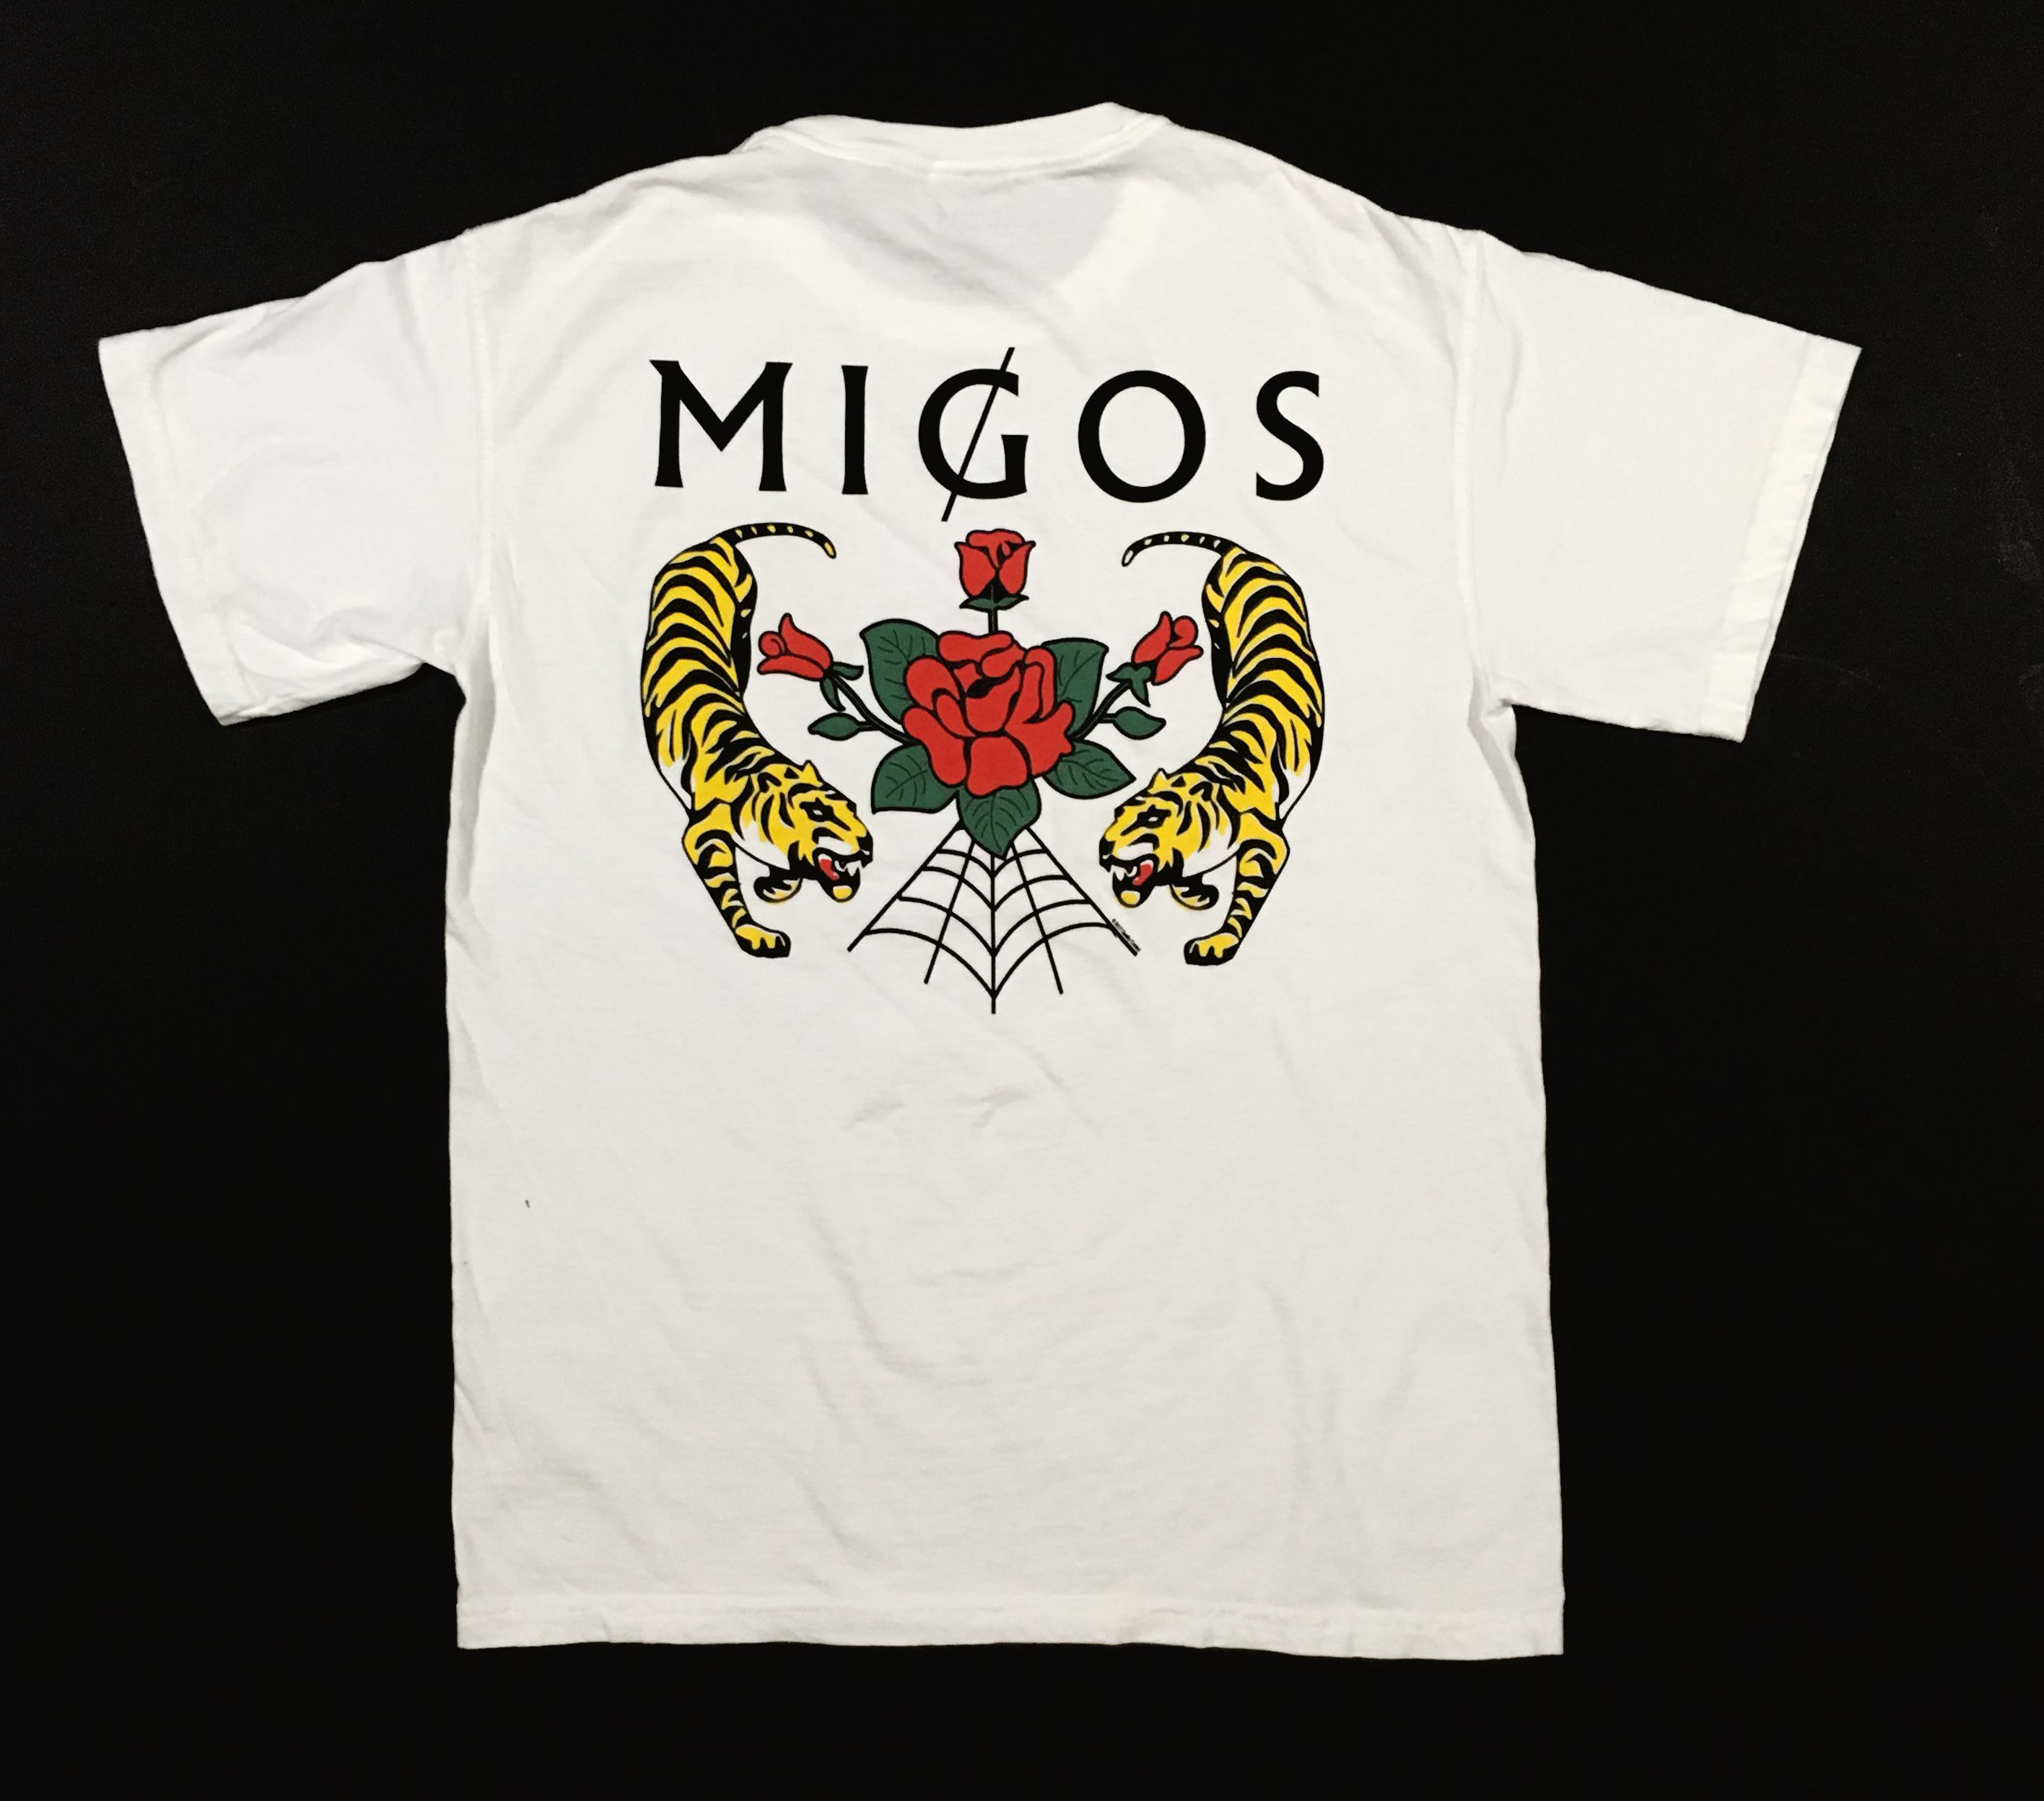 Migos 'Culture II' Merch T-shirt (Back)